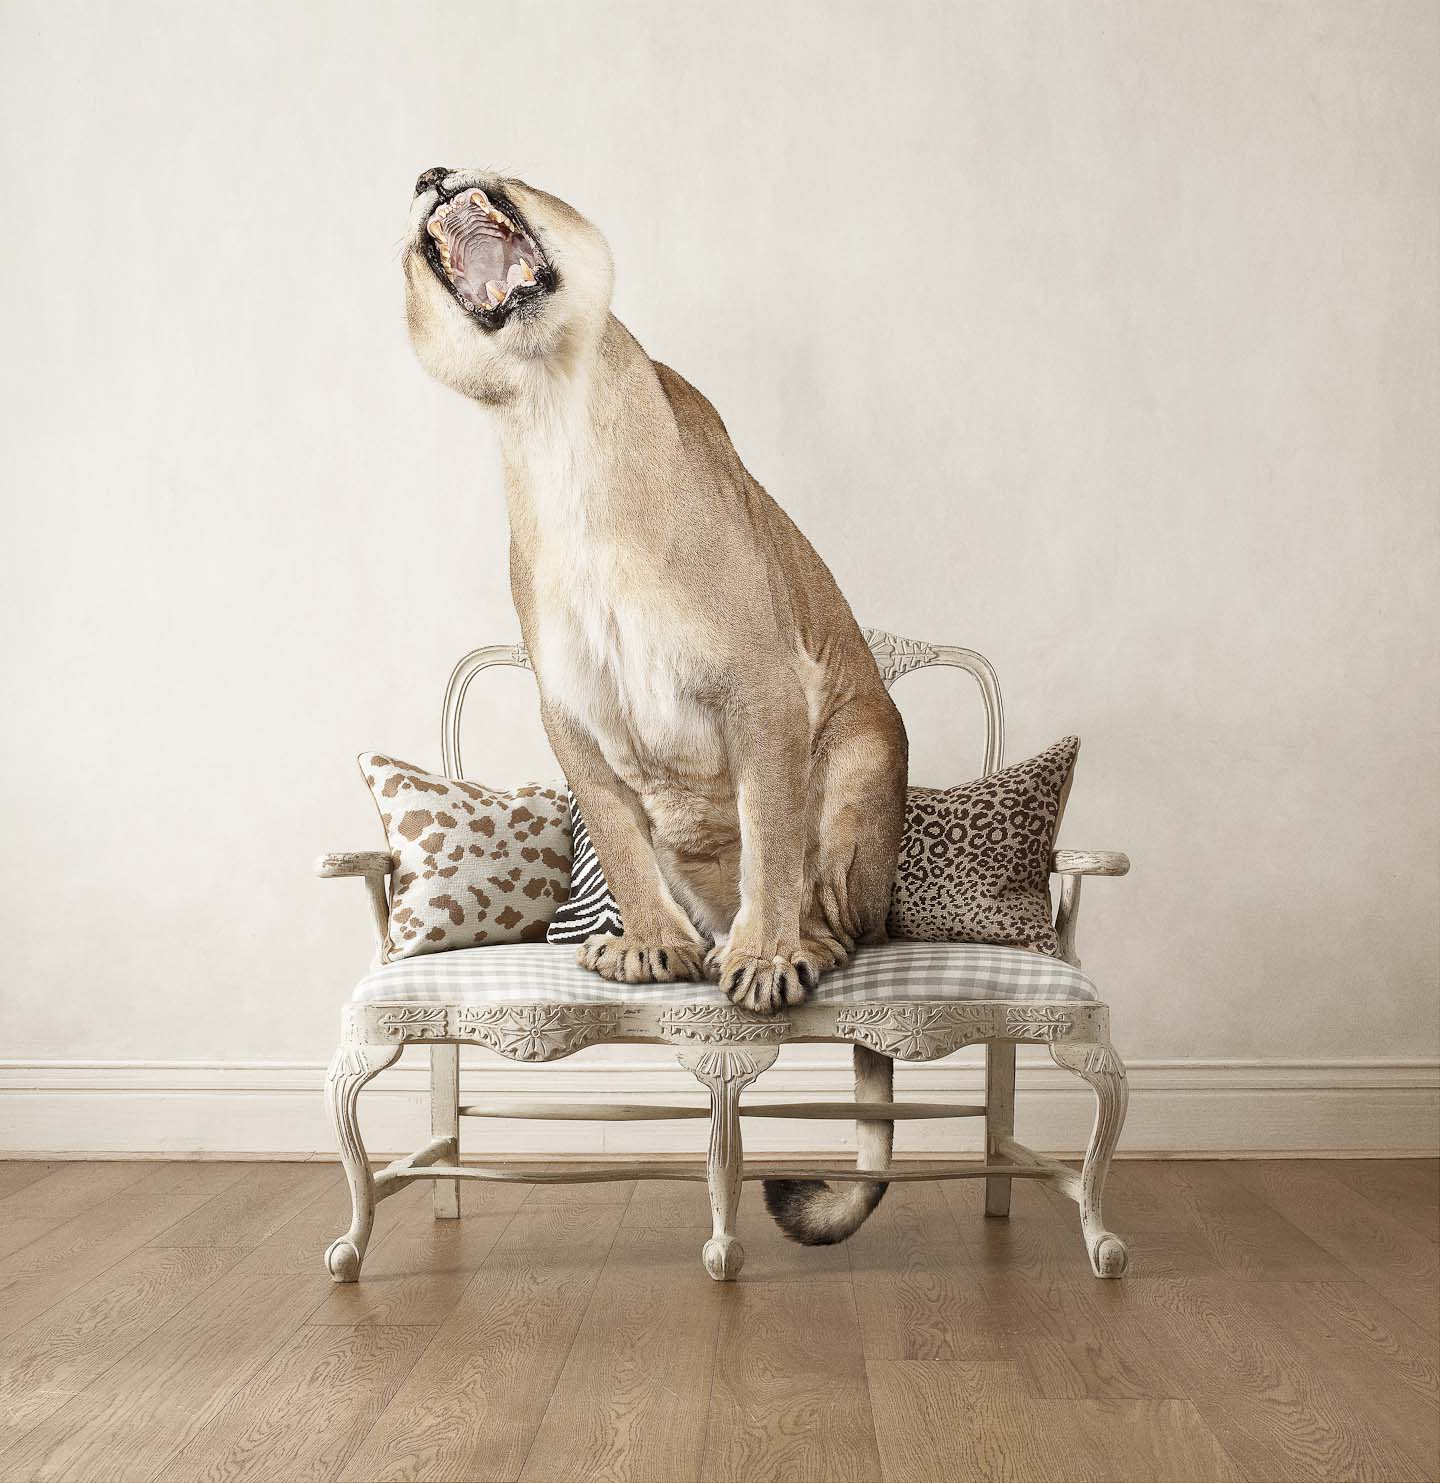 Alex Howe animal lioness roar chair interior hanging tail wallpaper